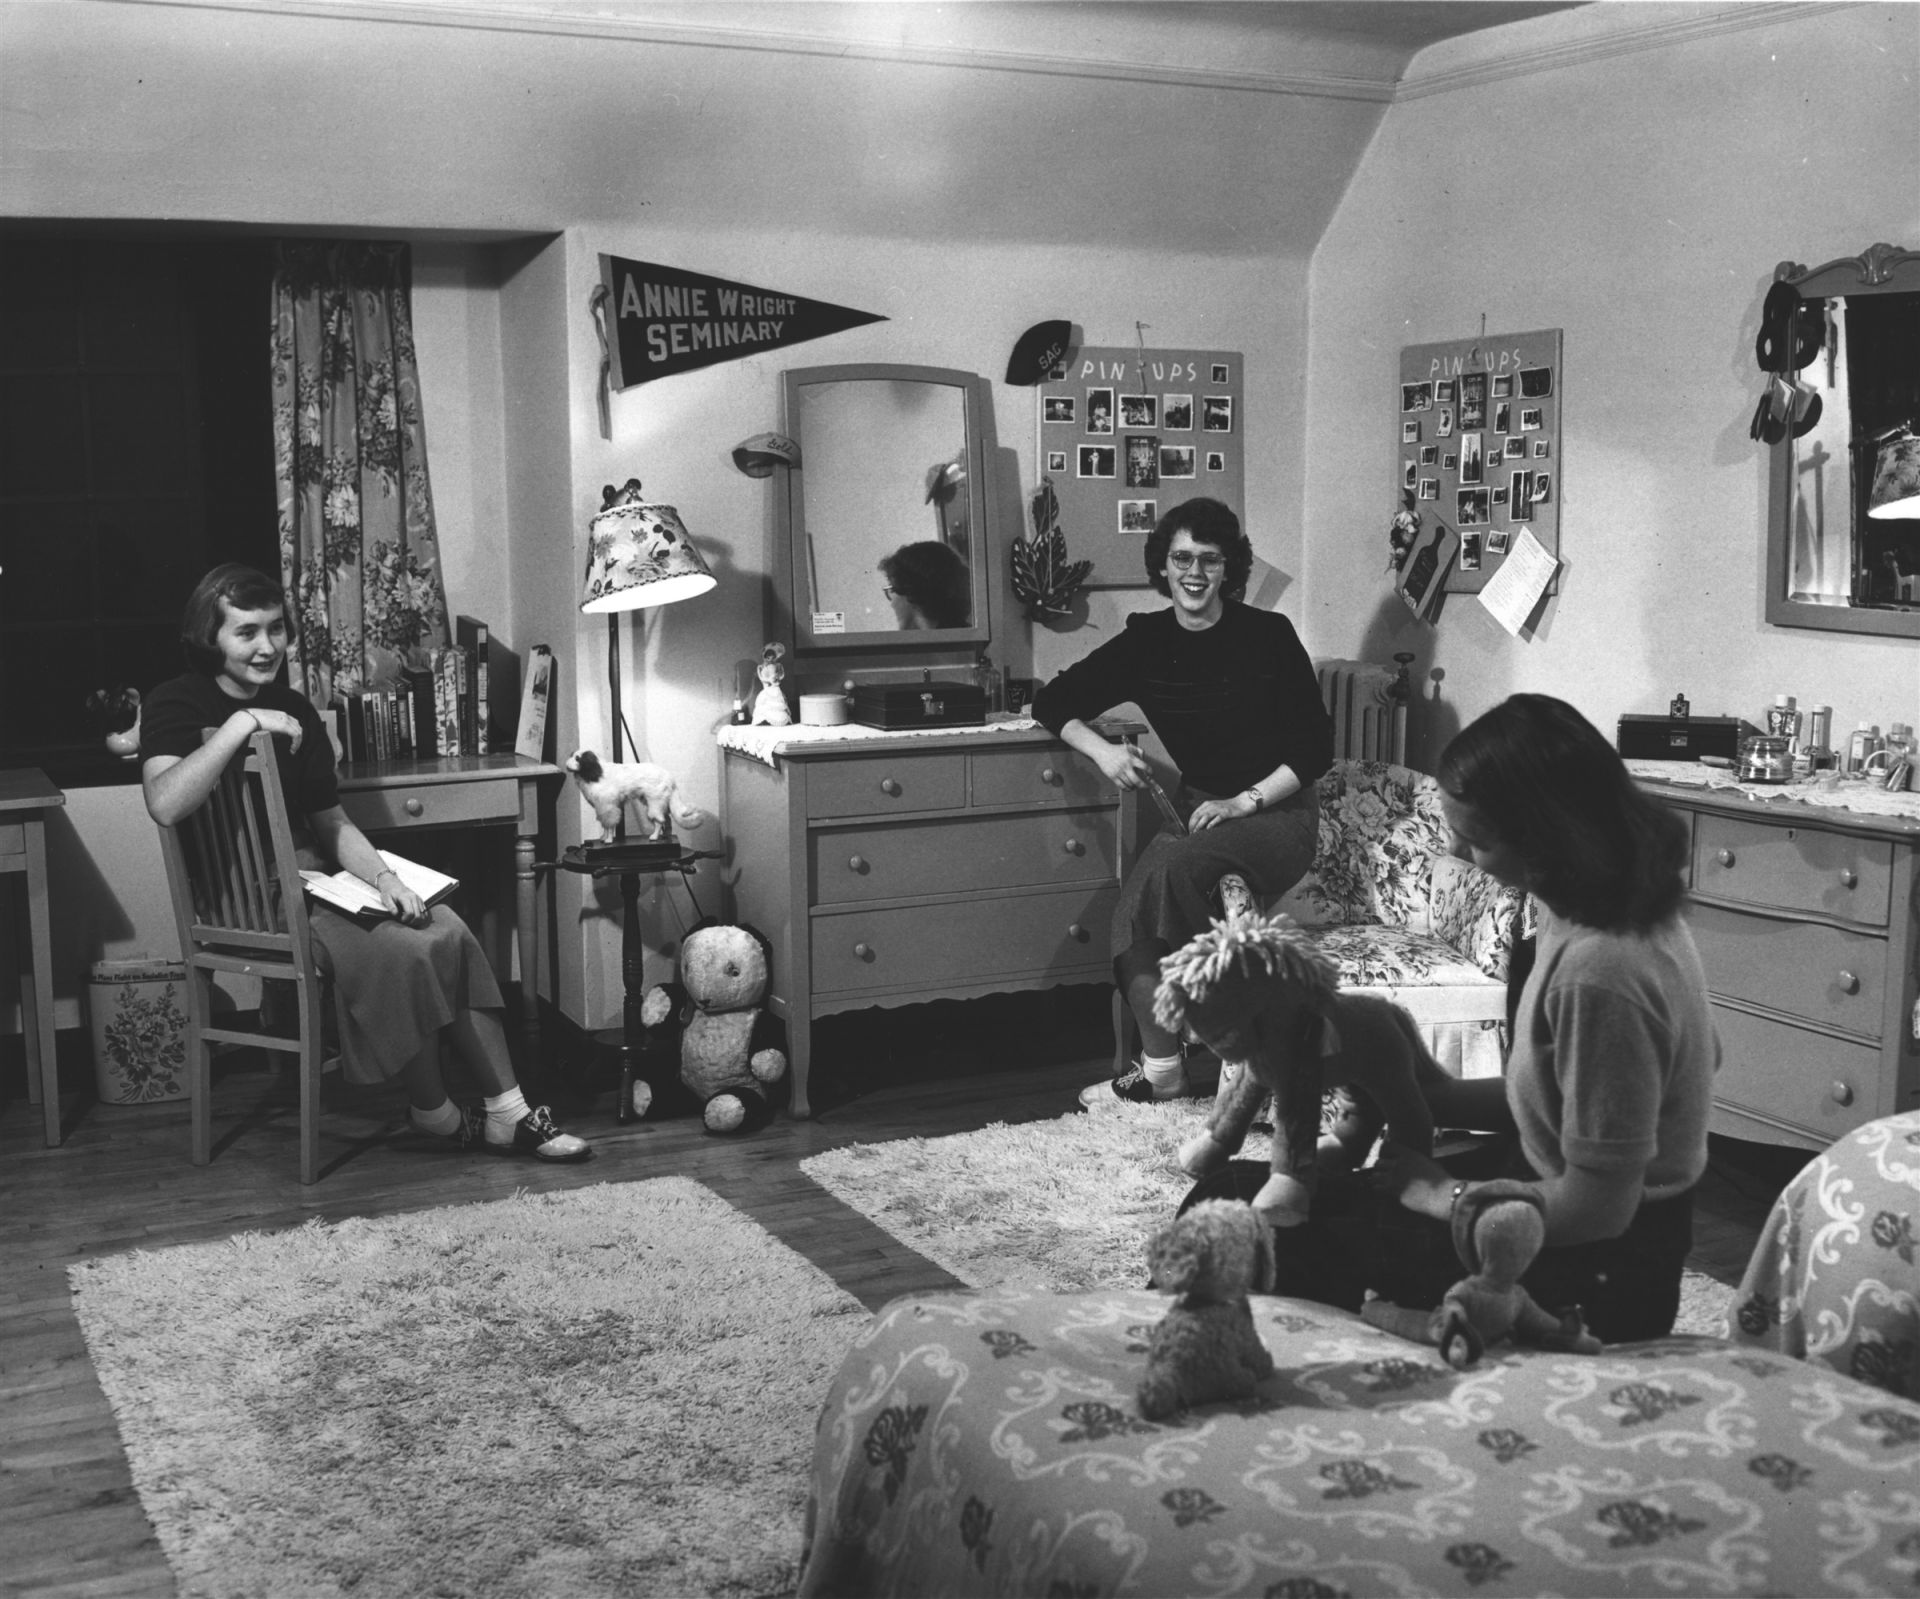 Dorm Room in the 1960s